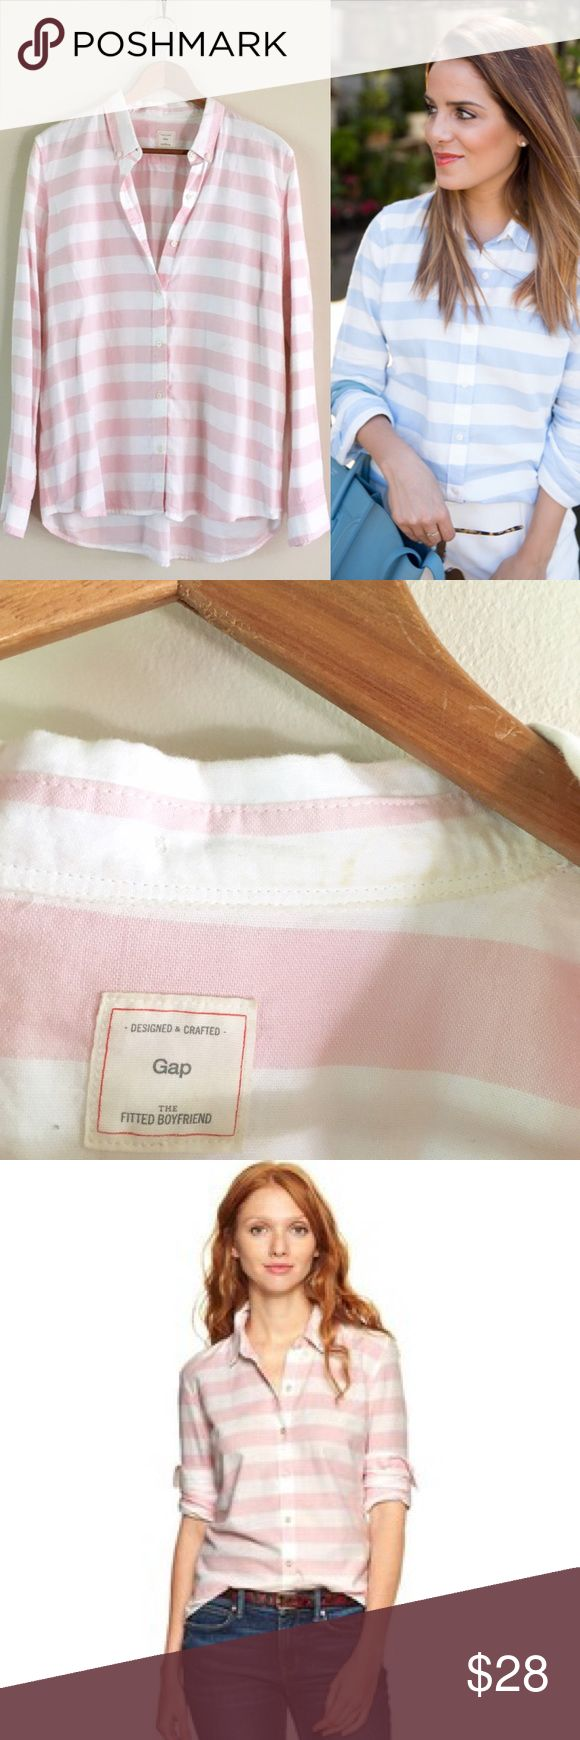 GAP | Fitted Boyfriend Oxford Shirt Soft pink & white stripe boyfriend shirt. Worn a handful of times, some yellowing on inside collar that I have not tried to remove. Likely from self tanner lotion 😬  • no paypal, no trades • i do not model • no offers please - prices are firm • ask questions before buying • smoke free home • 20% discount on bundles • GAP Tops Button Down Shirts